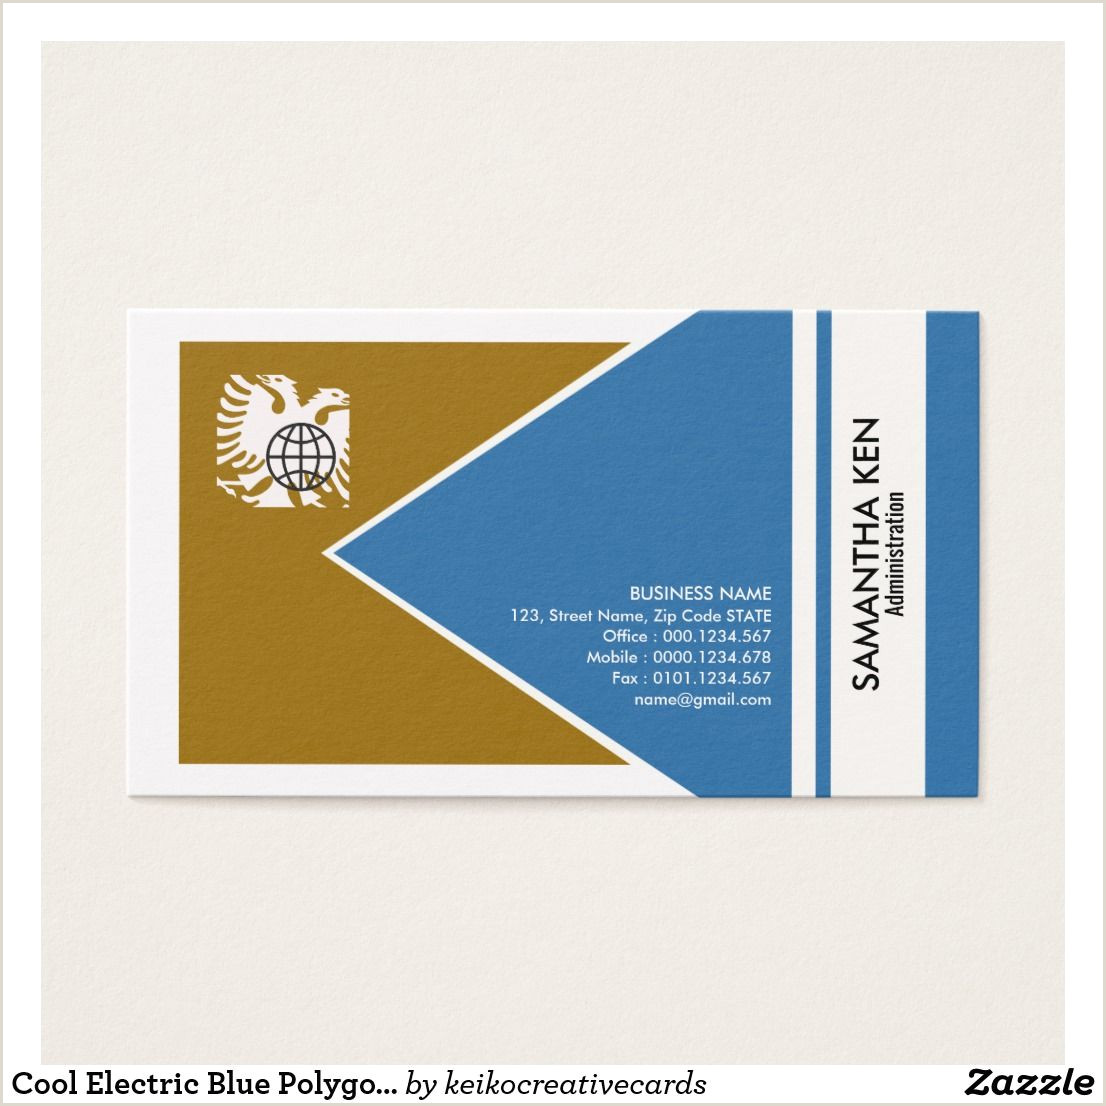 Business Cards Print Your Own Cool Electric Blue Polygon Admin Business Card